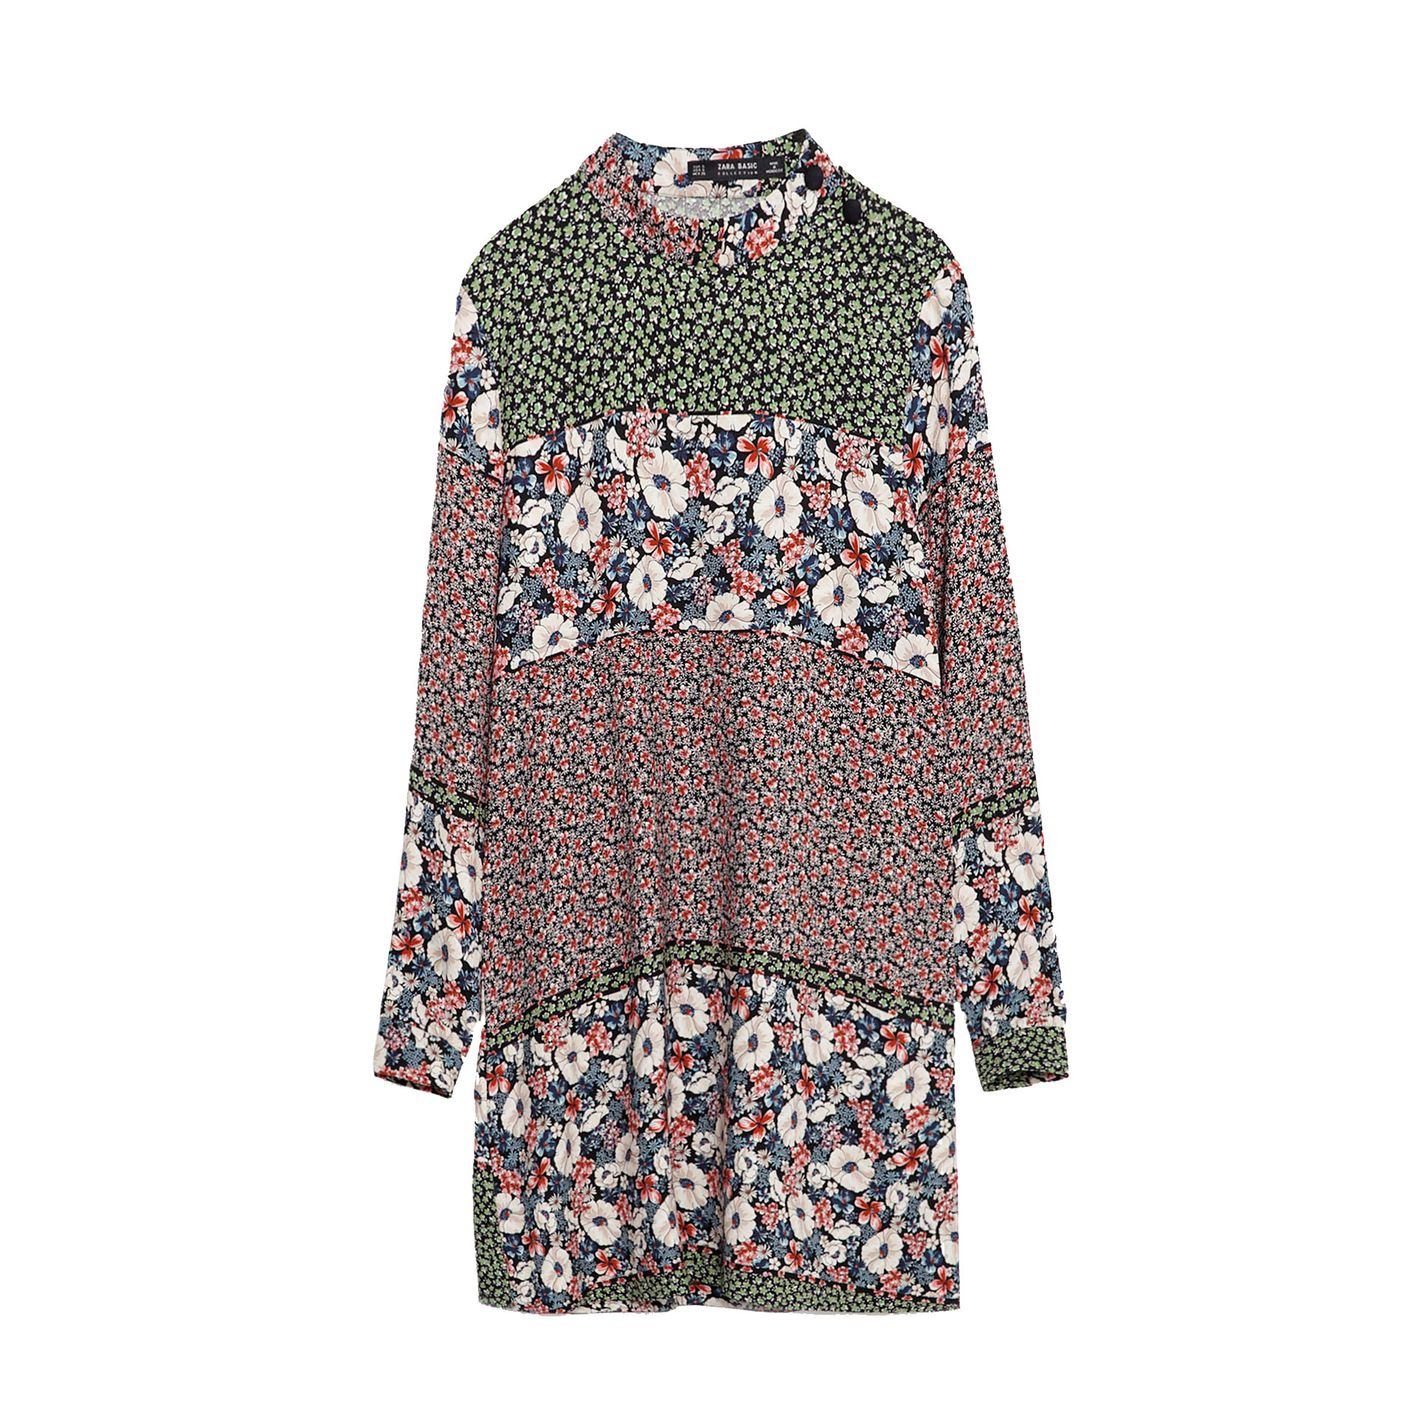 6bc4a38d606a 12 Graphic Floral Dresses You Can Wear Now